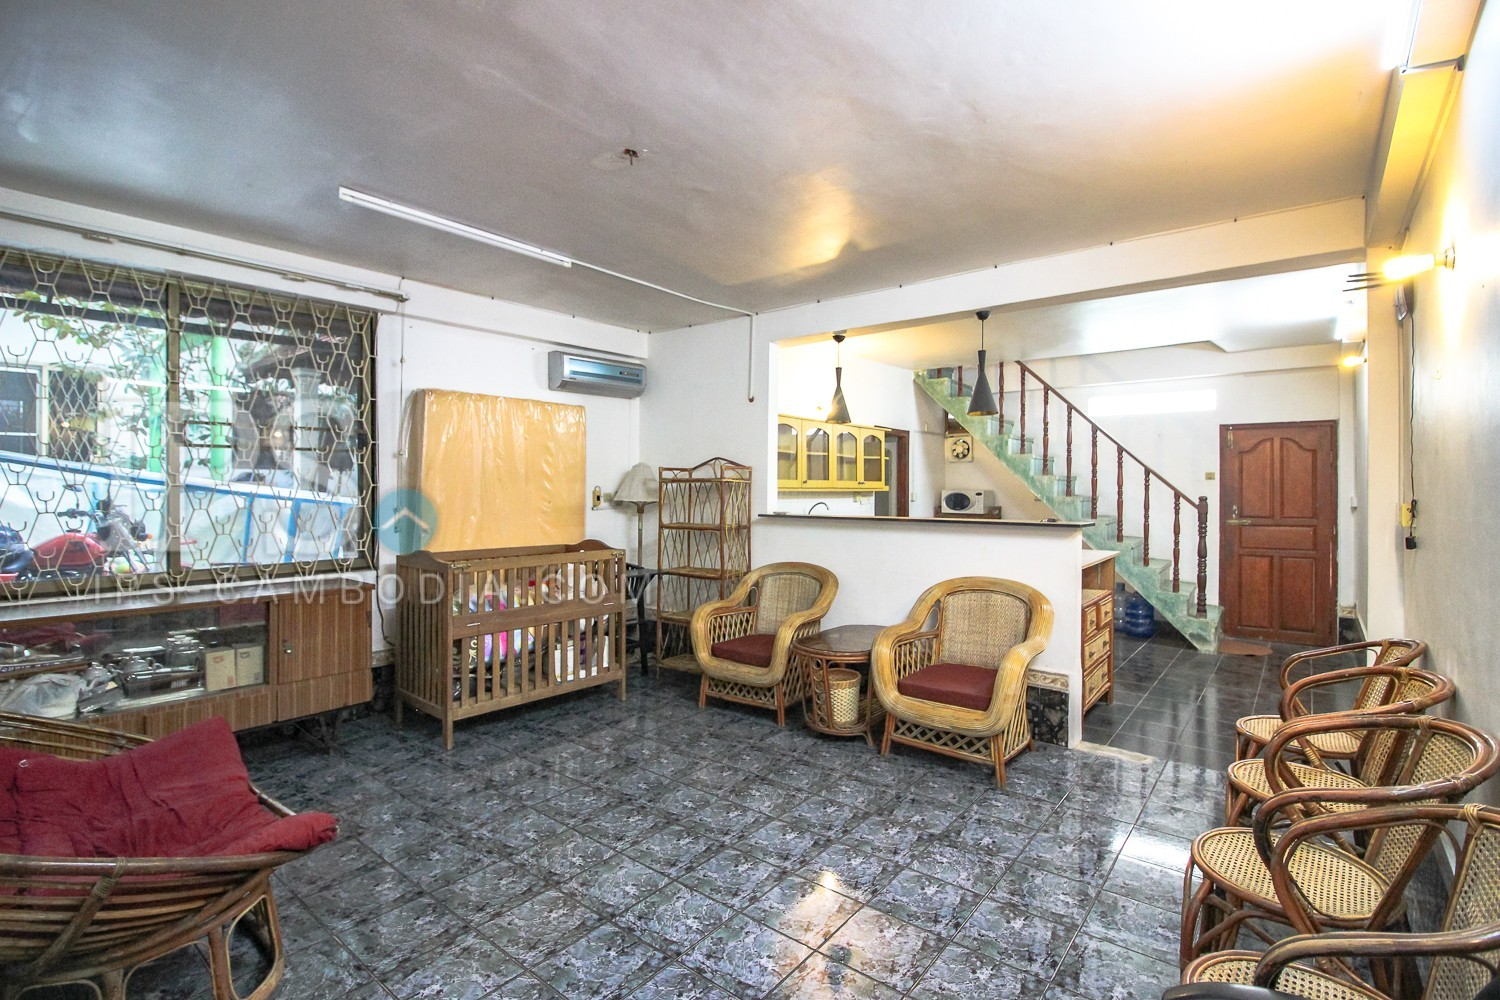 3 Bedrooms Townhouse For Rent in Tonle Bassac, Phnom Penh